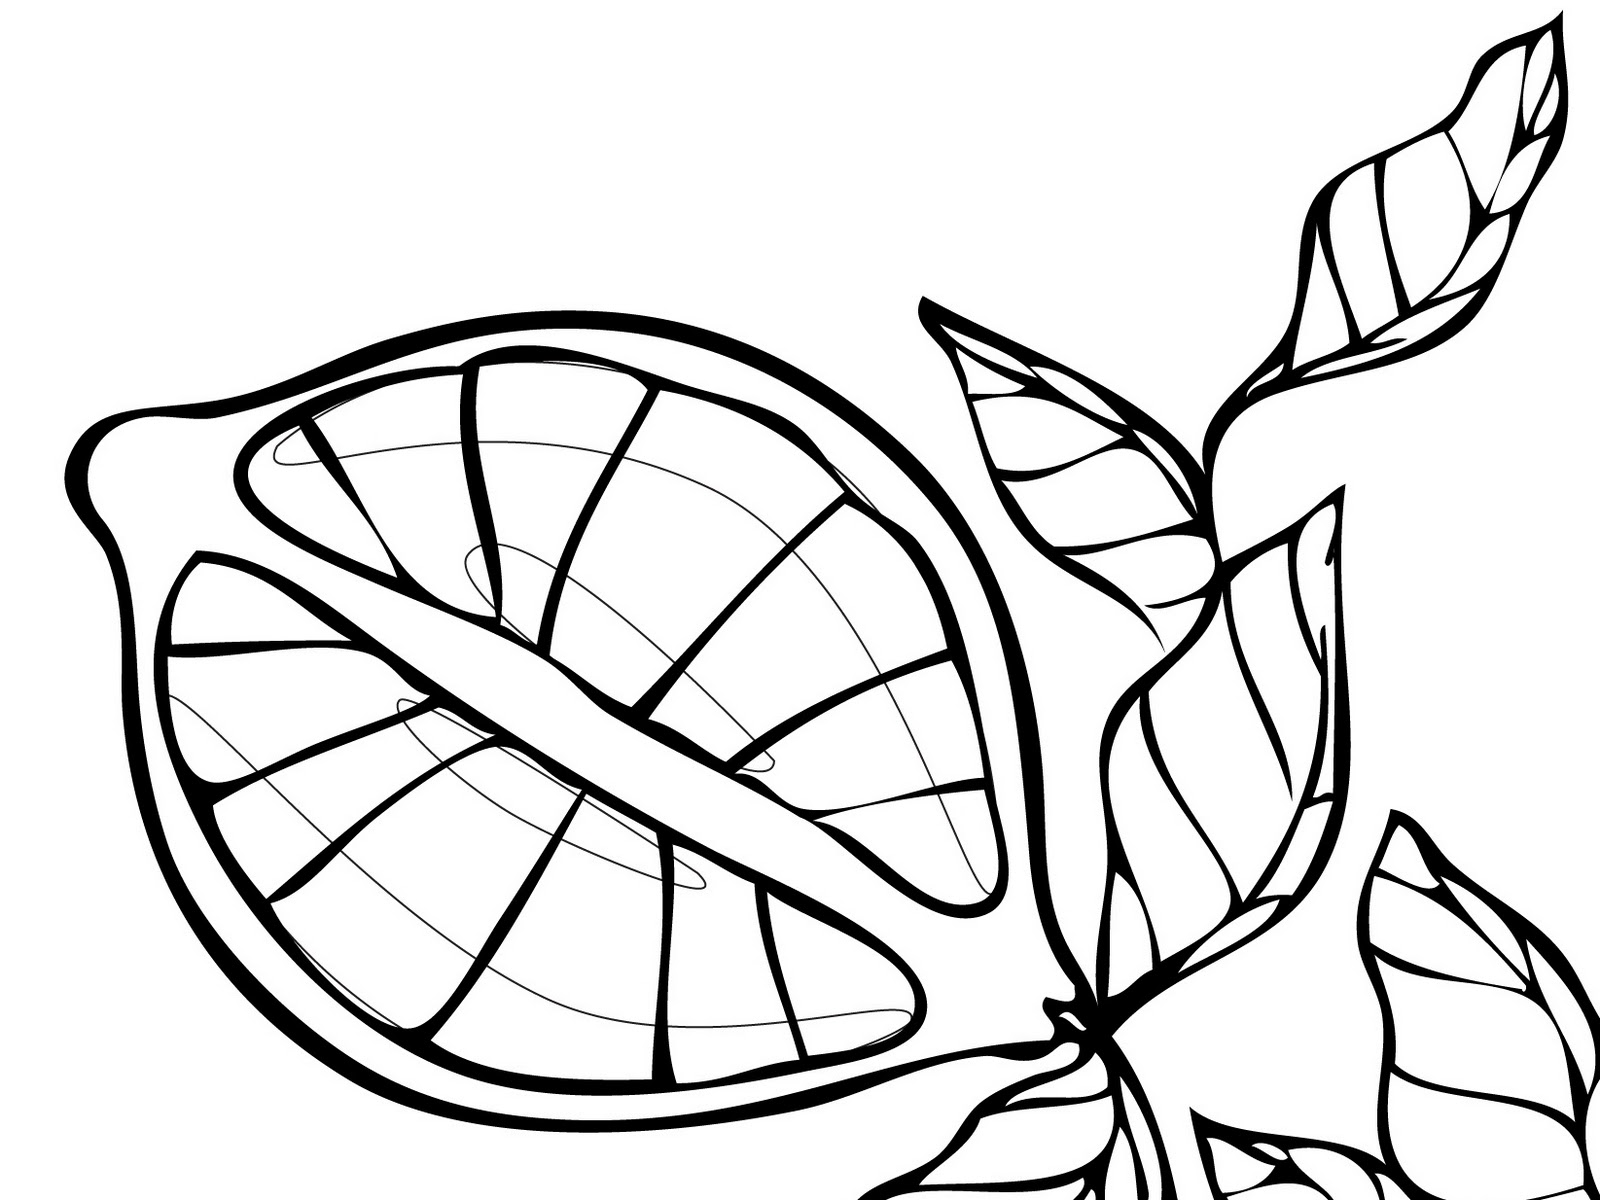 lemon coloring pages - photo #31